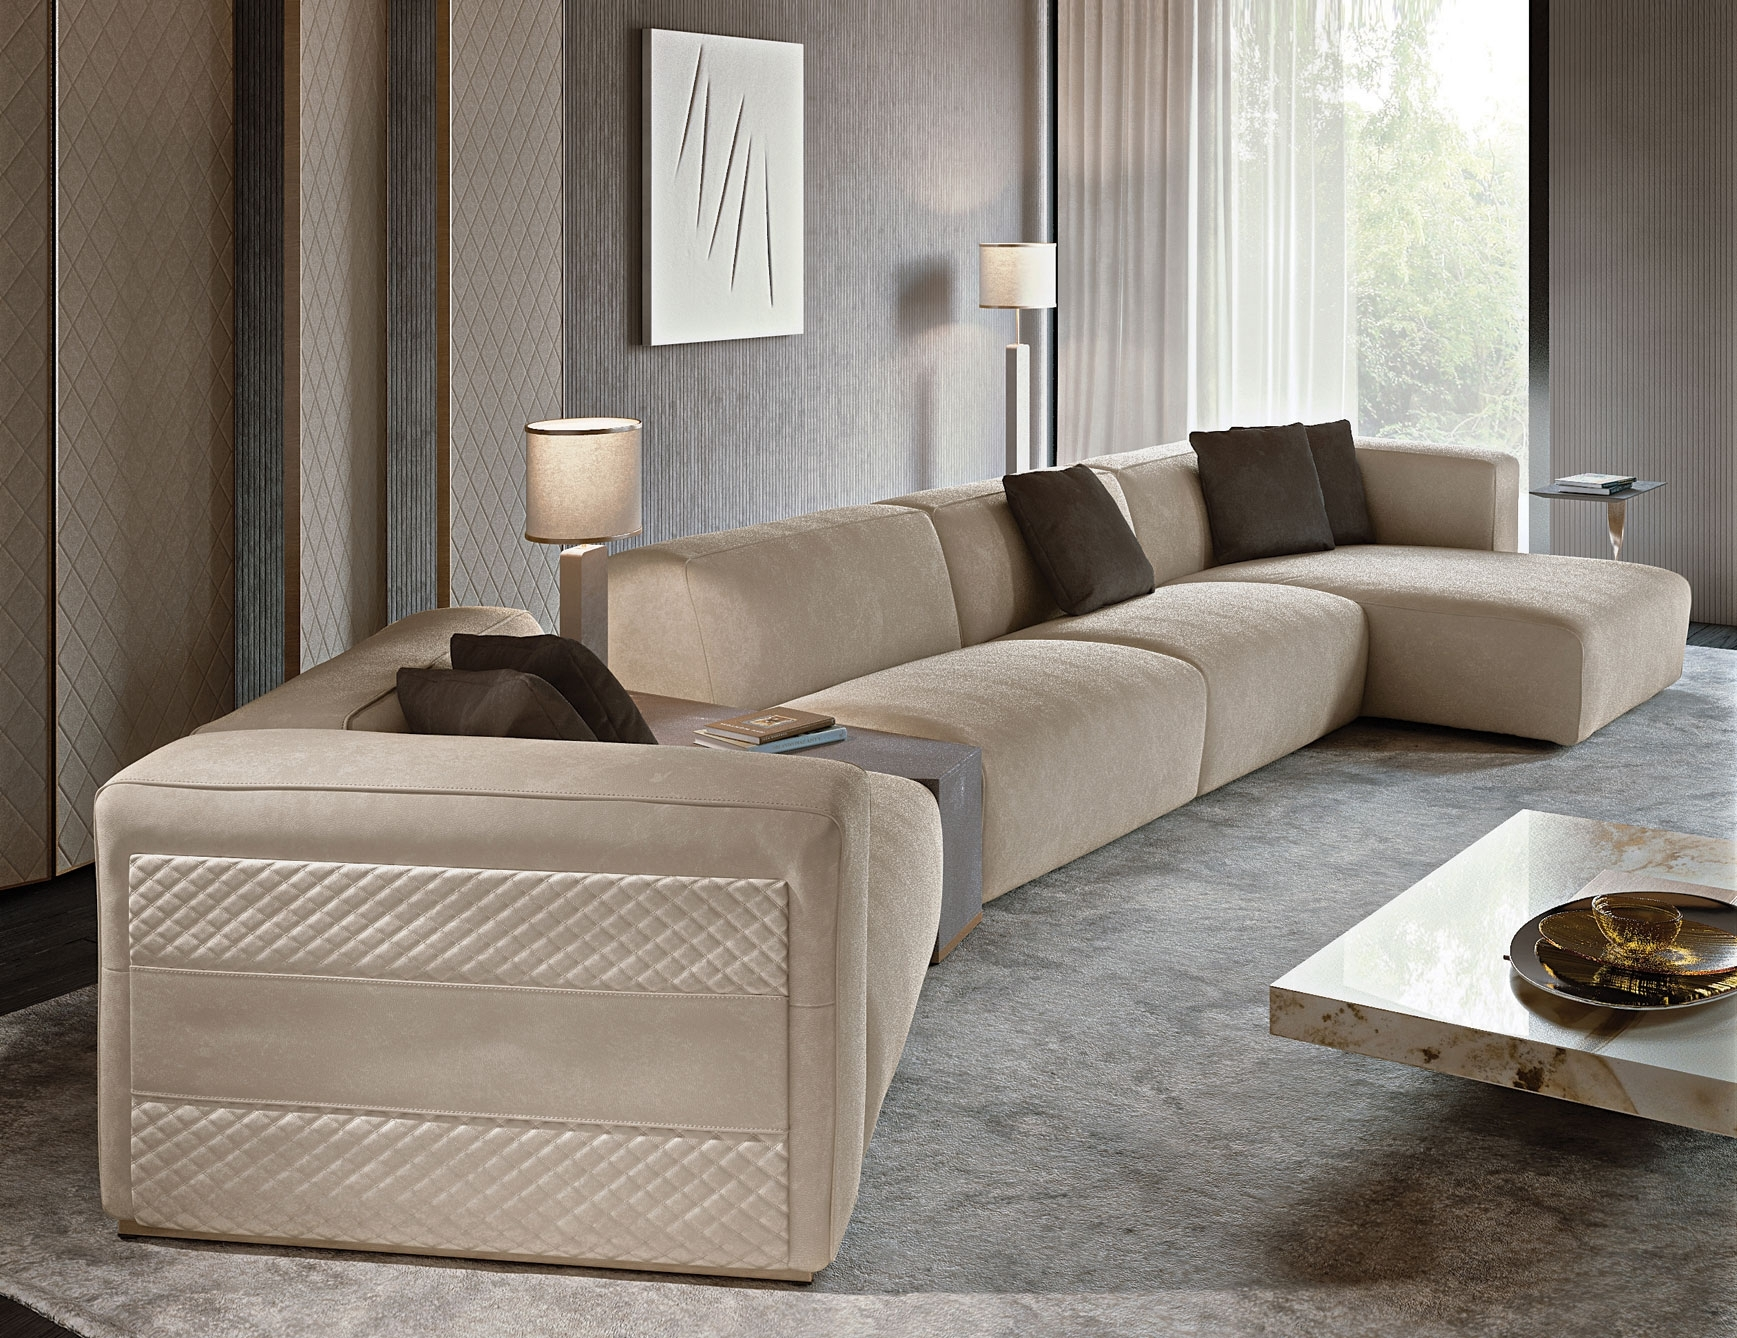 10 Best Collection Of High End Sofas Sofa Ideas